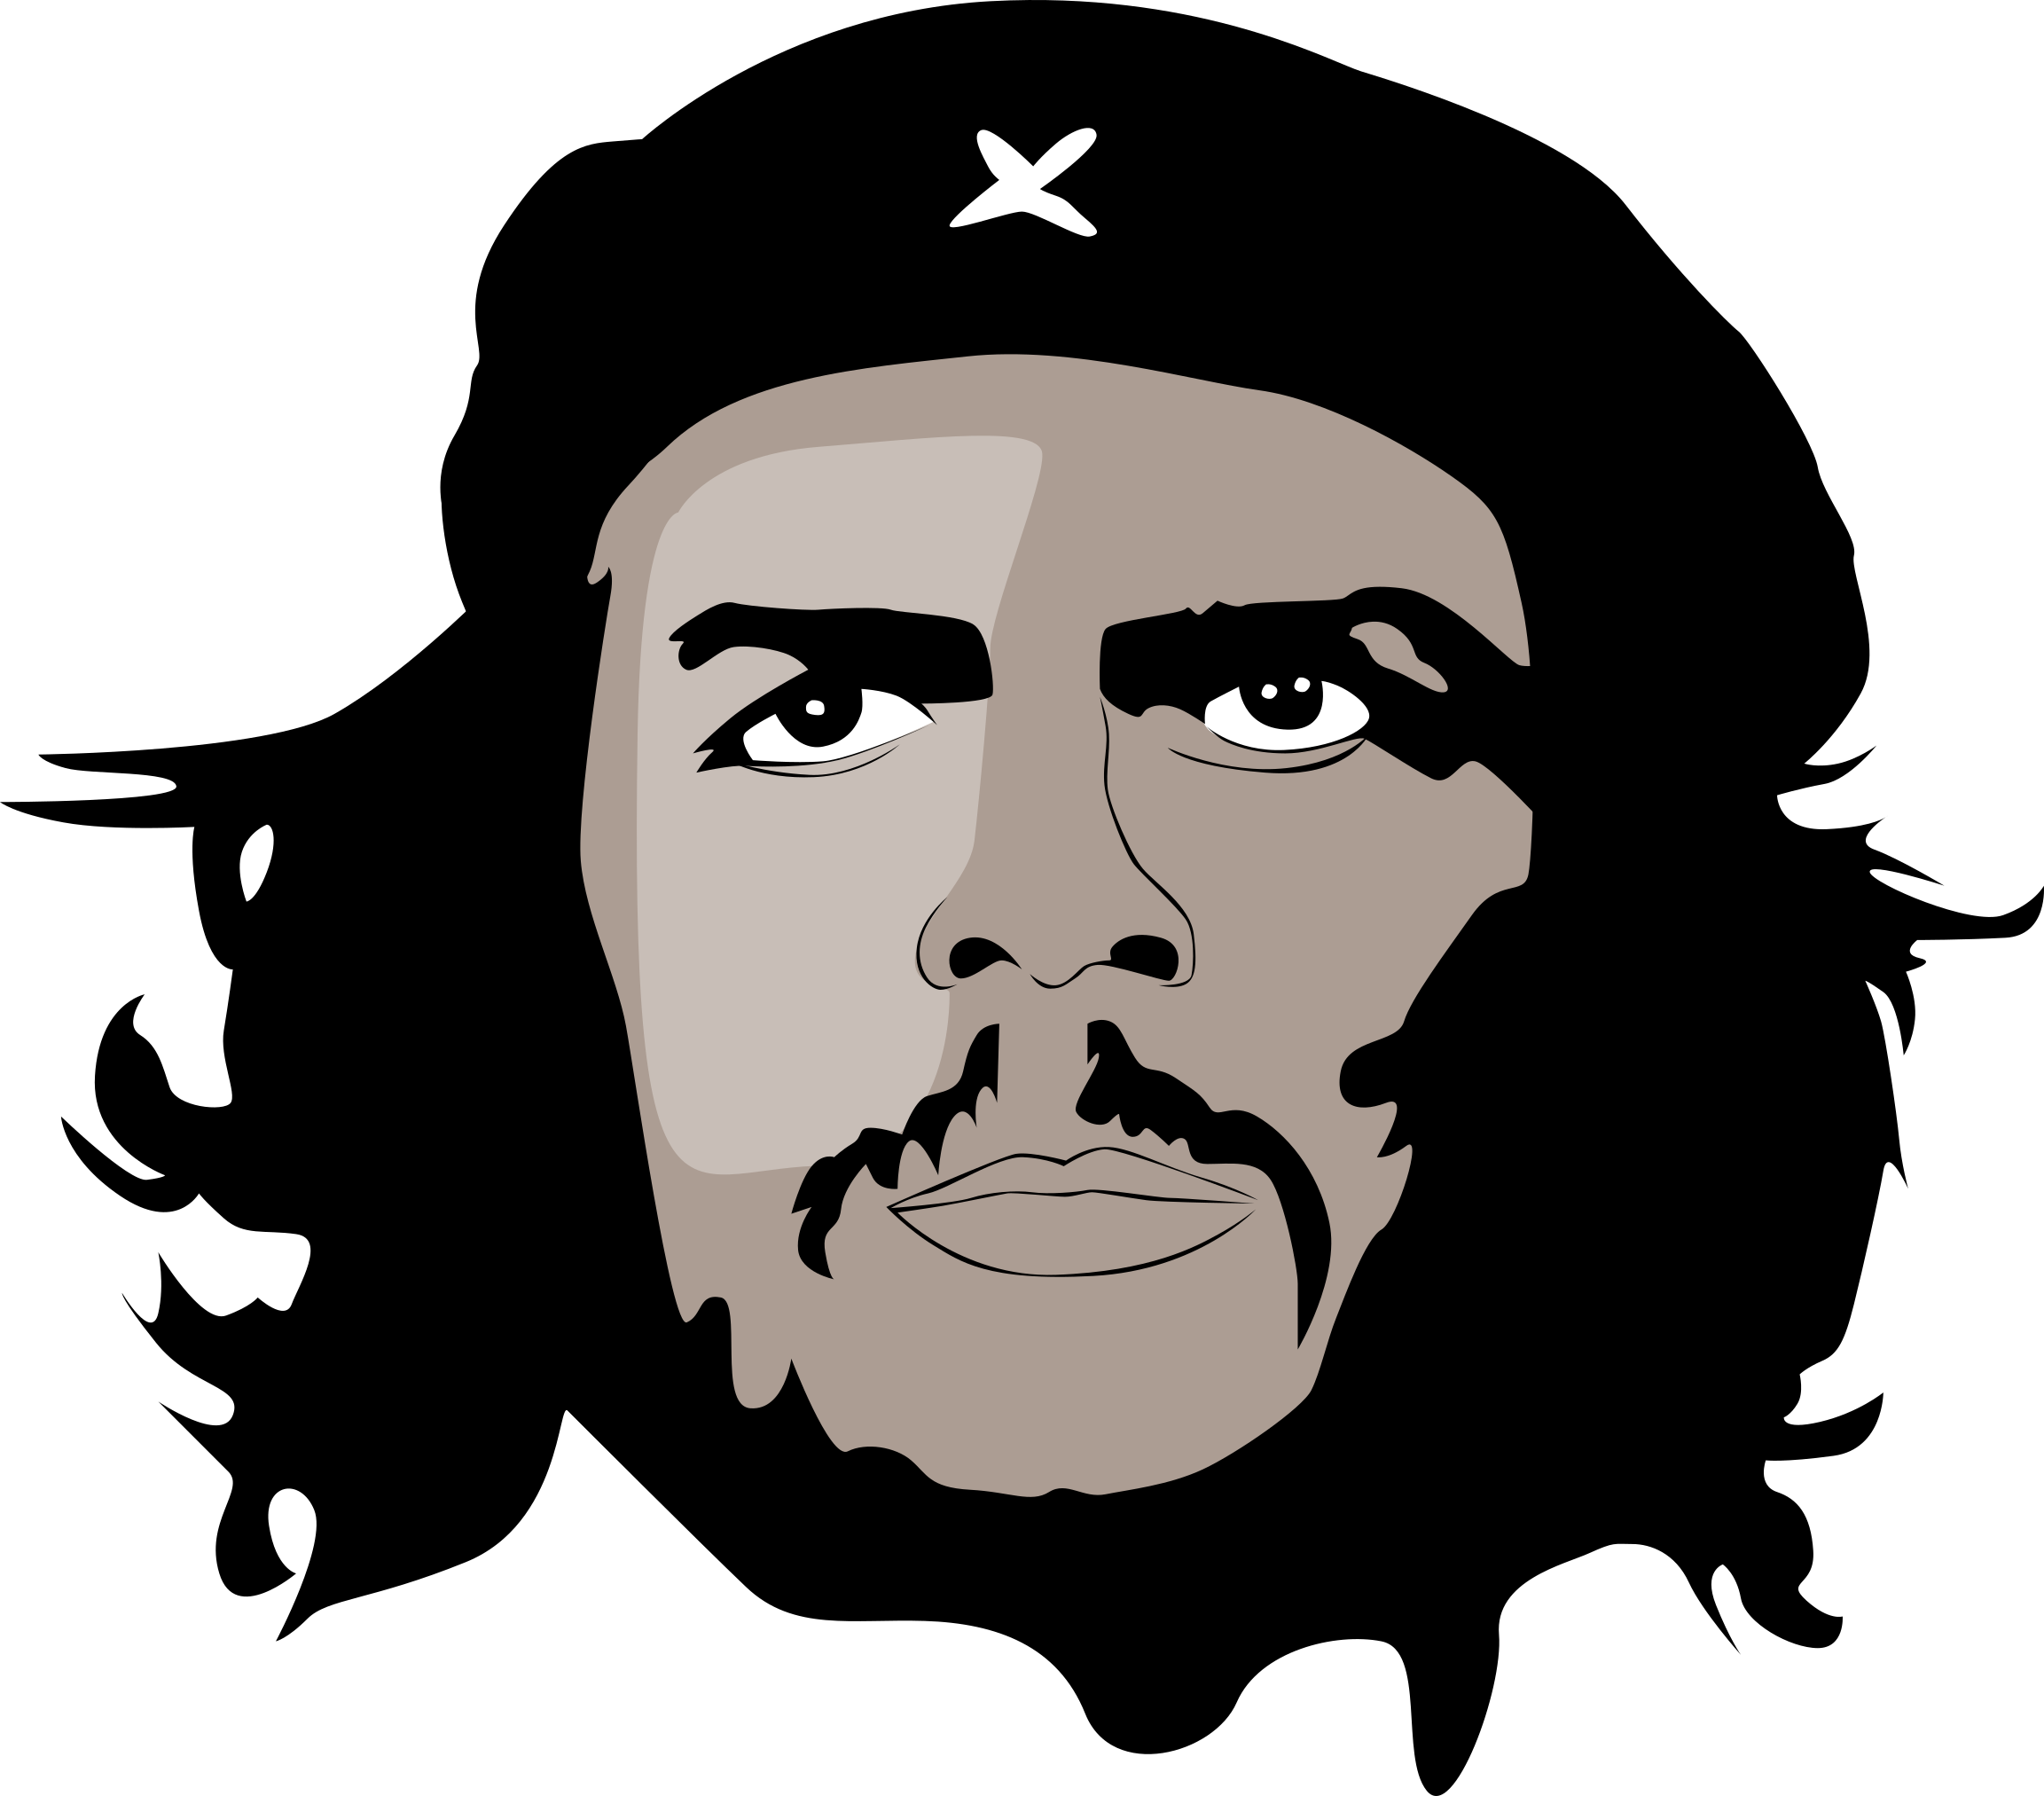 Grab and download Che Guevara PNG Image Without Background